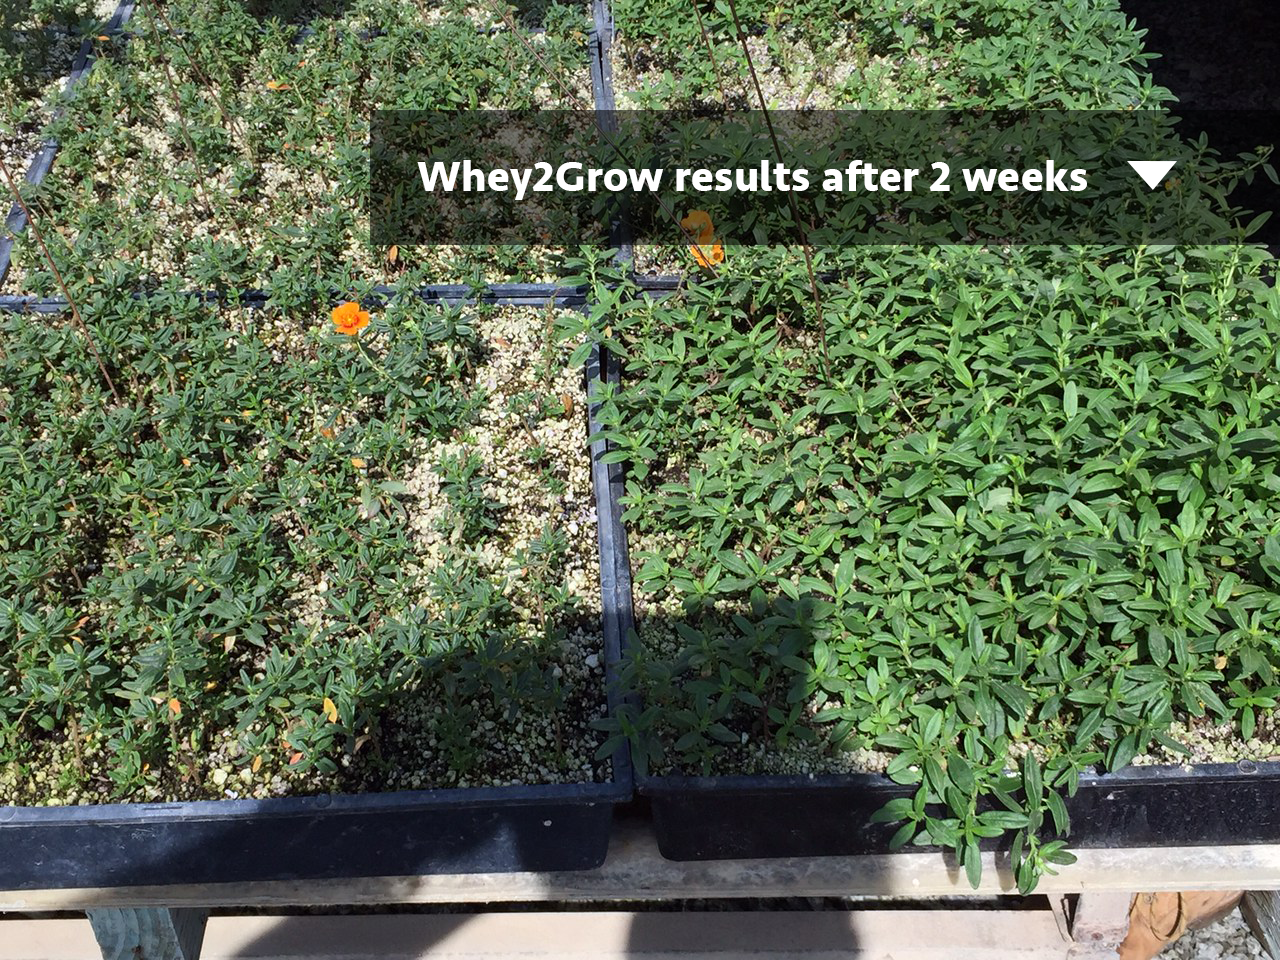 whey2grow_ground-cover.png